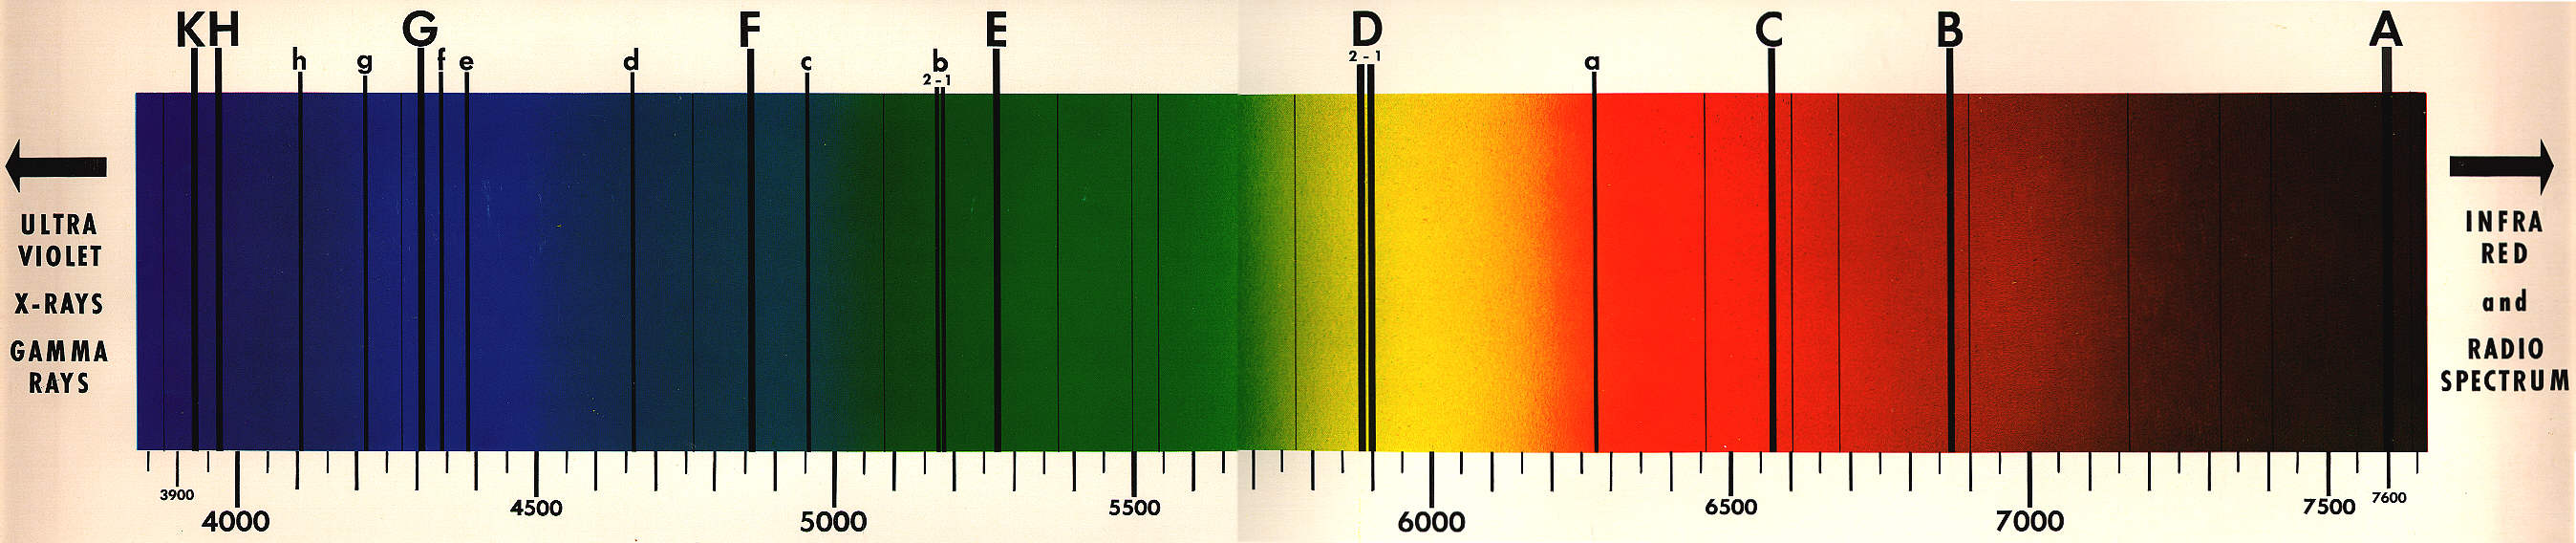 High-Resolution Image of Solar Spectrum